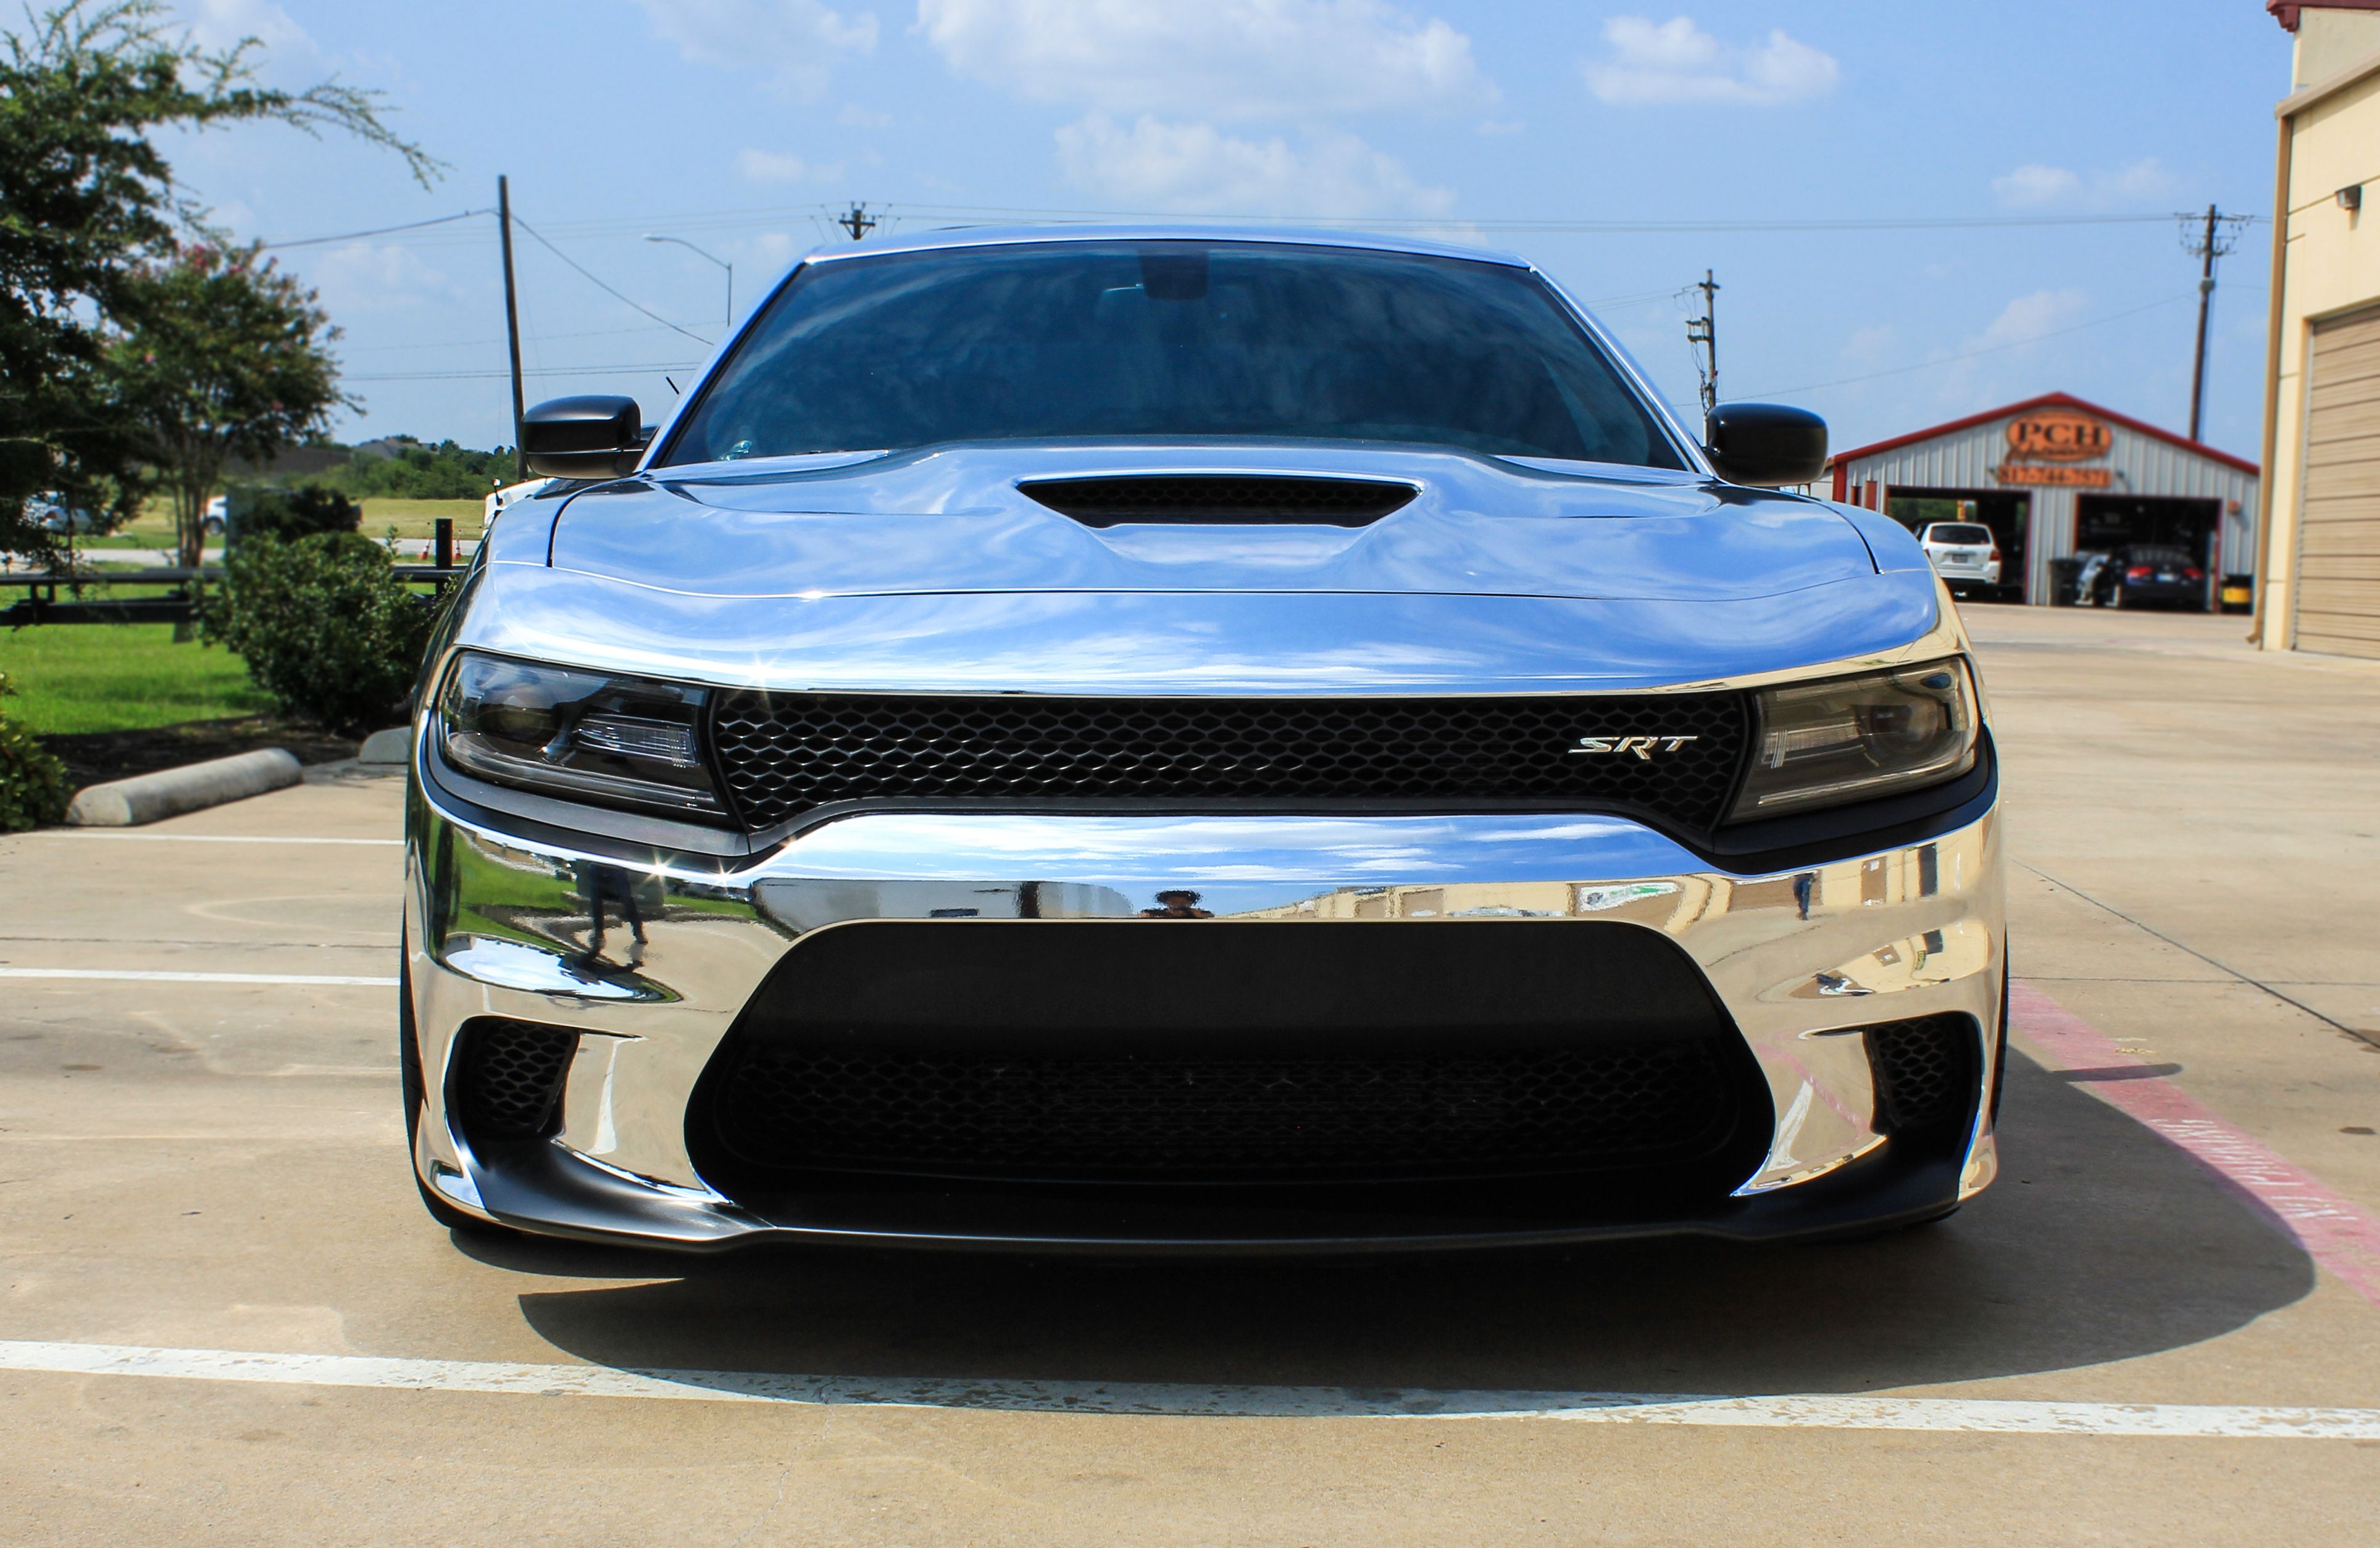 Chrome Hellcat Charger Dodge Charger Muscle Cars Mustang Dodge Charger Hellcat